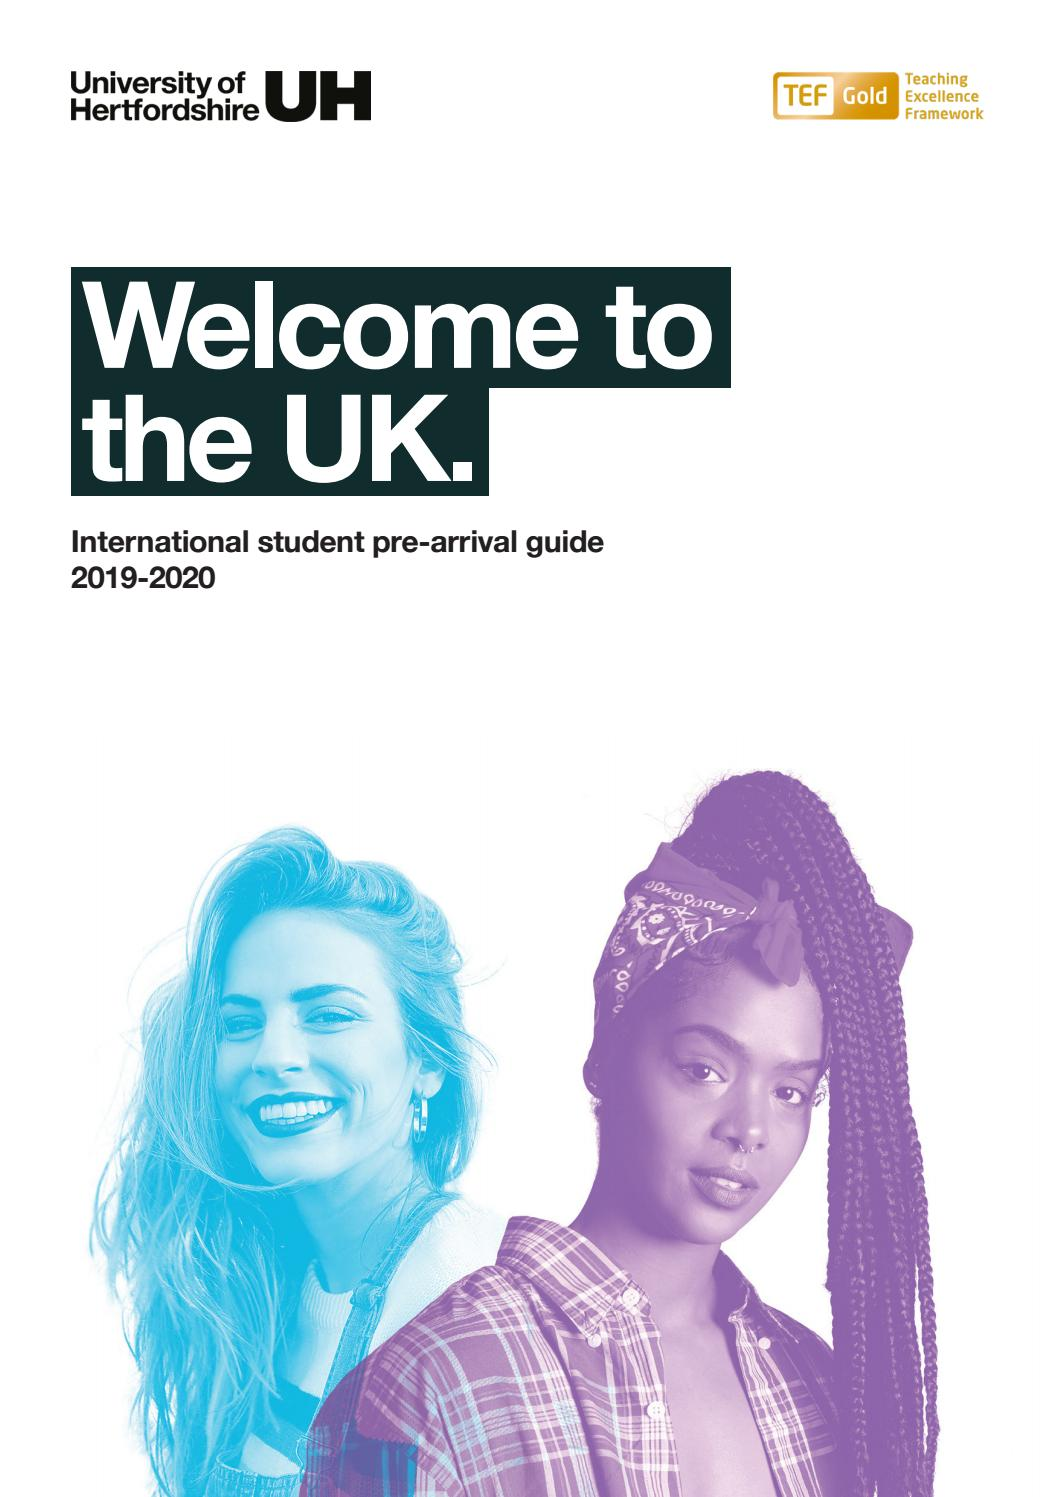 Welcome to the UK guide for international students by